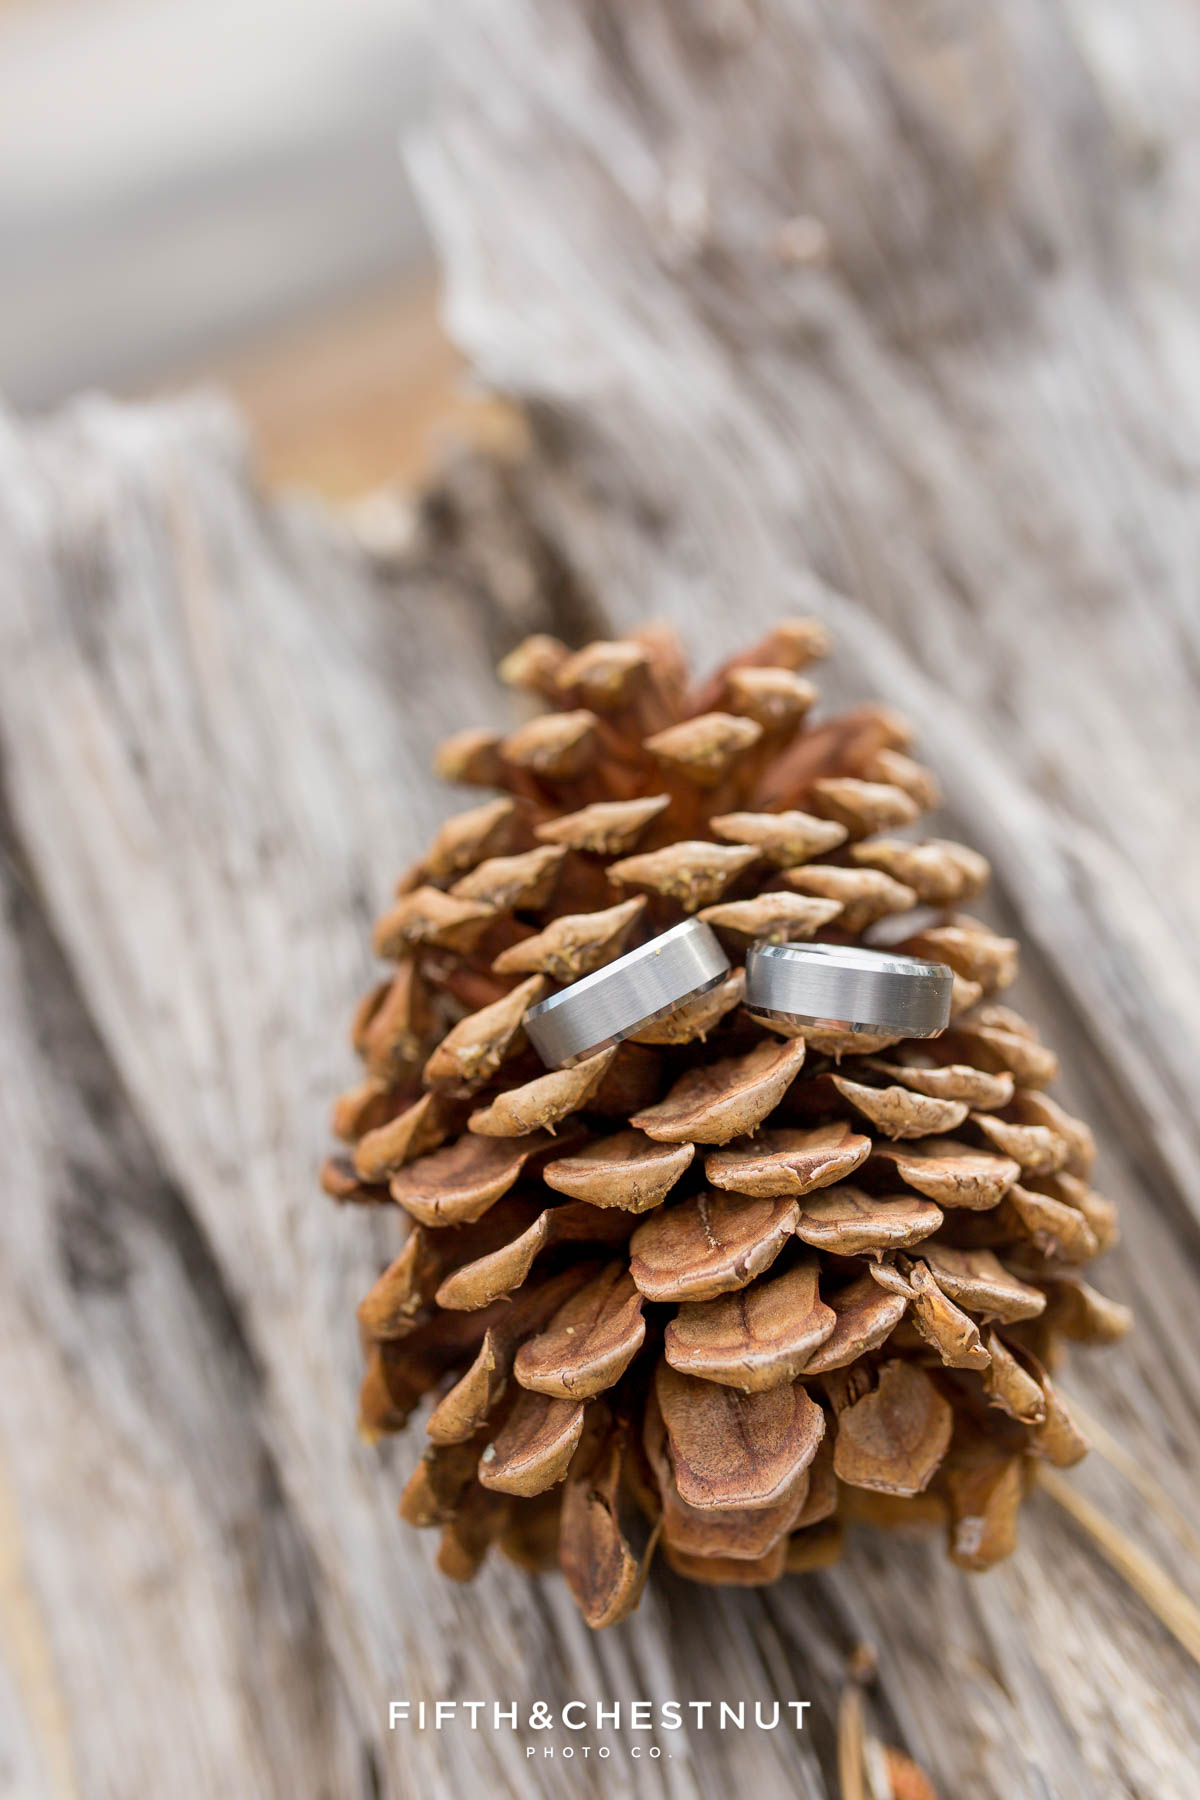 Detail photo of grooms' rings on a pine cone for their Truckee Wedding